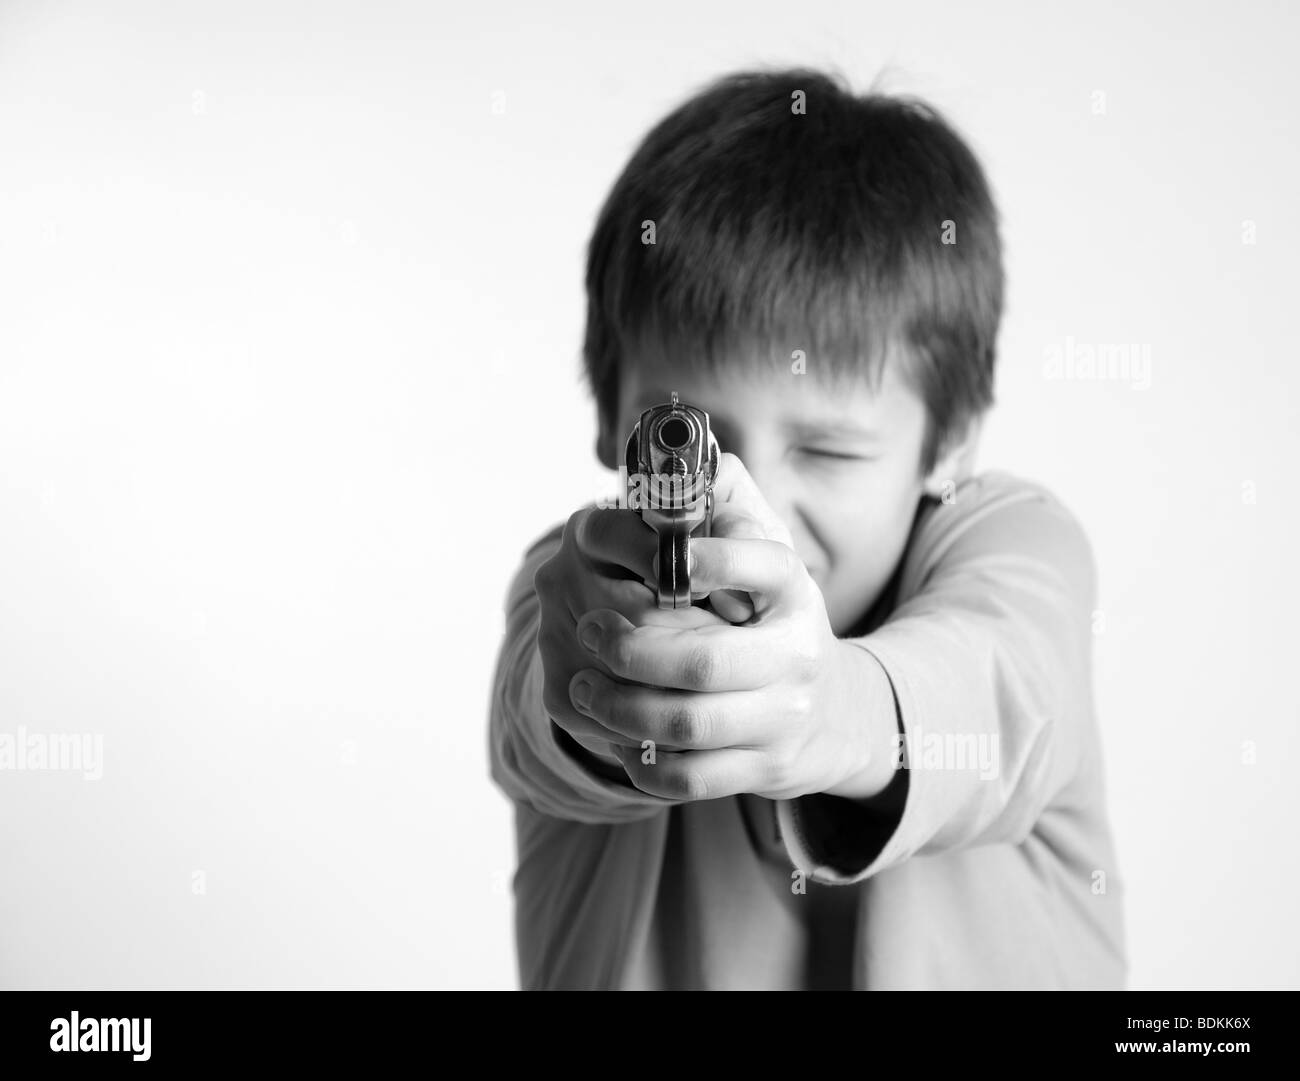 Preteen boy aiming forward a silver pistol, focus on the foreground, shades of gray, copy space - Stock Image